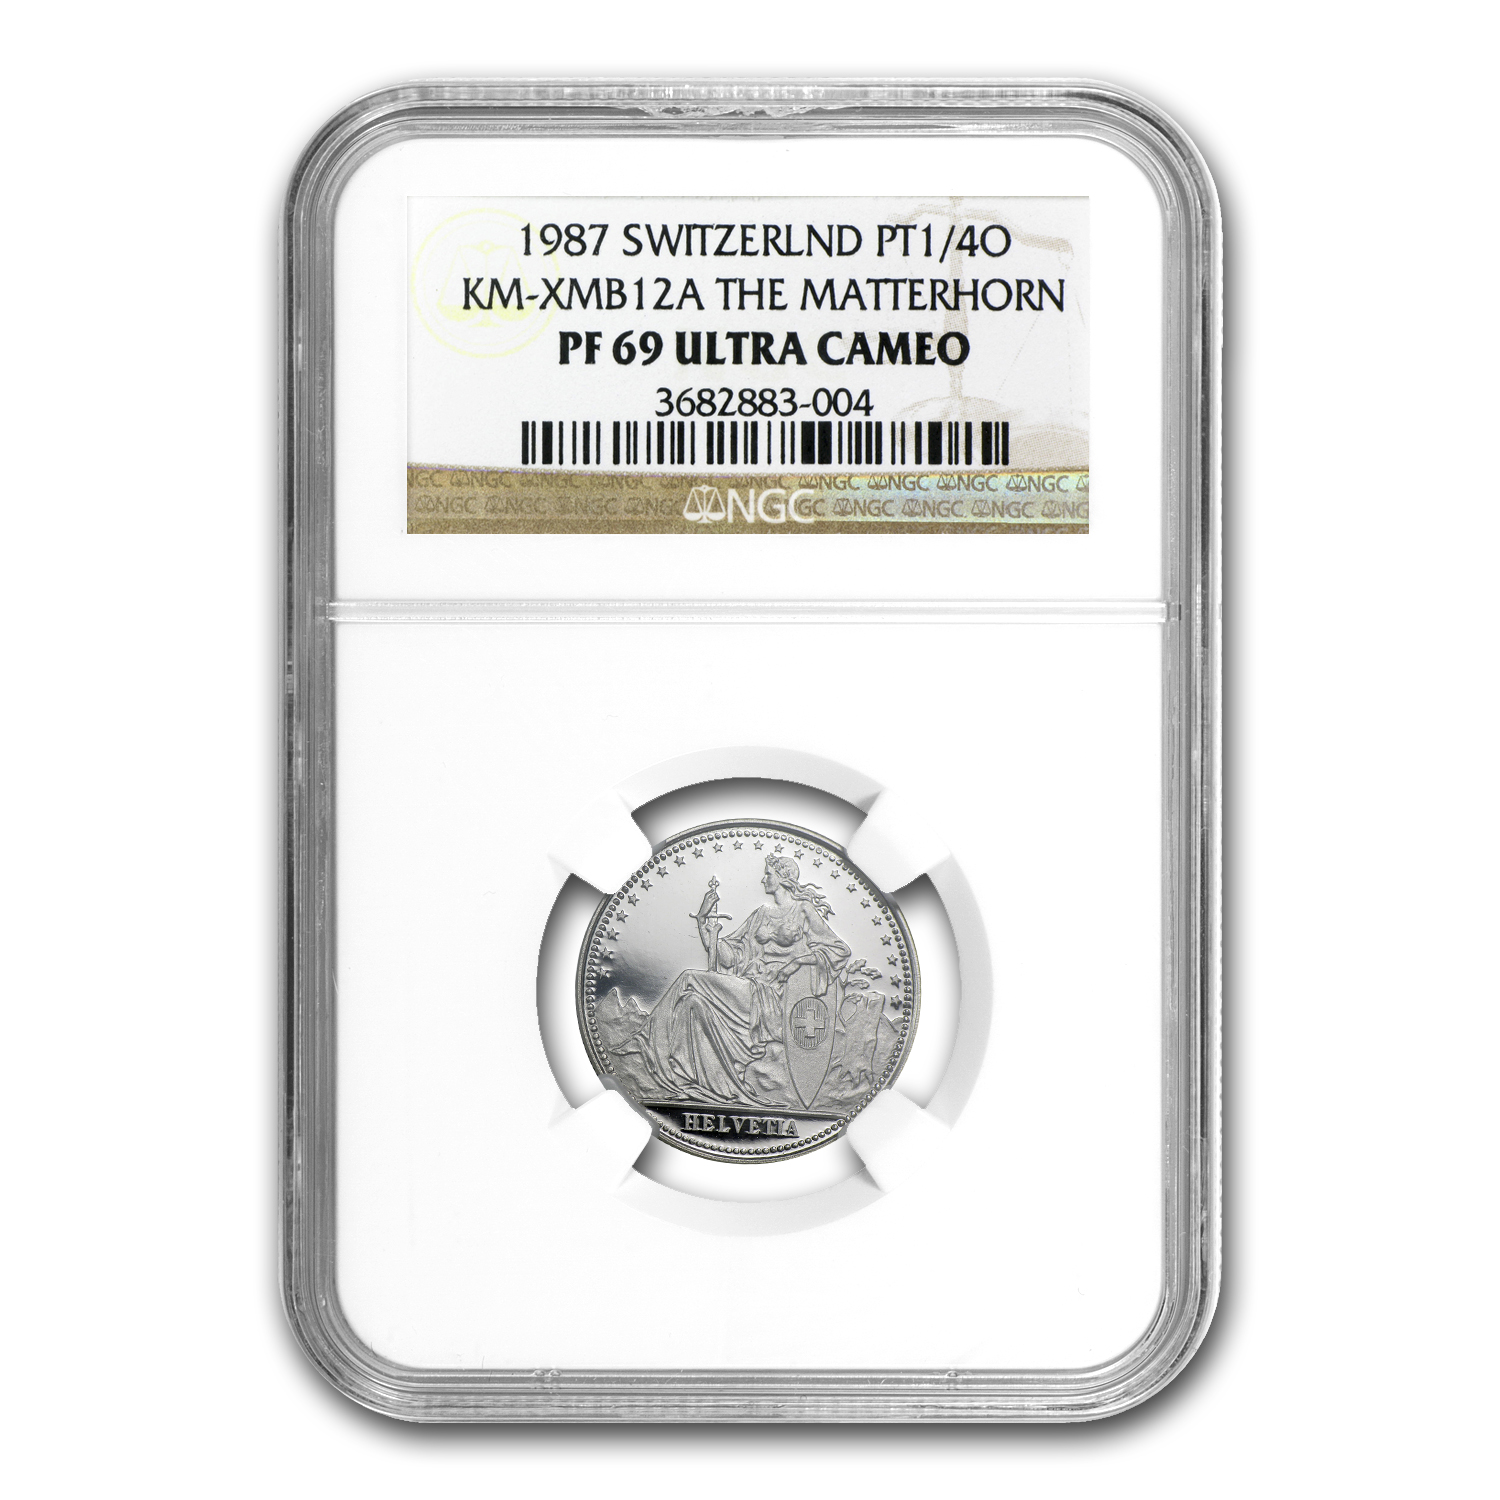 1987 Switzerland 1/4 oz Proof Platinum Matterhorn PF-69 NGC